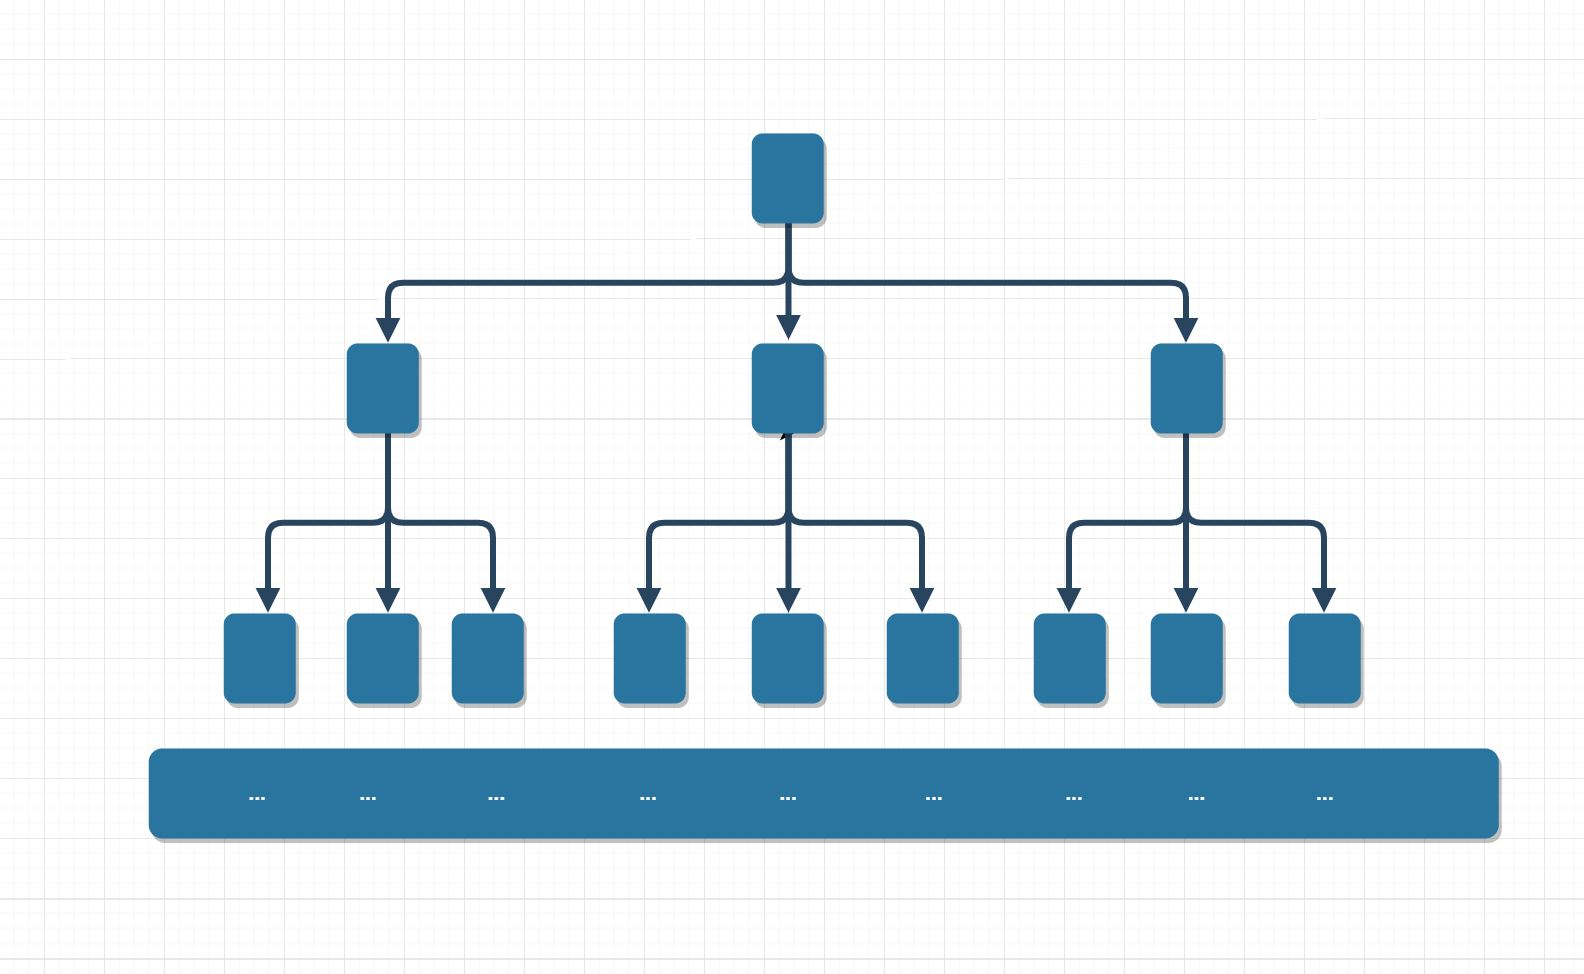 Diagram of a three way branching tree showing how recursively solving a three way branching tree would rapidly become intractable